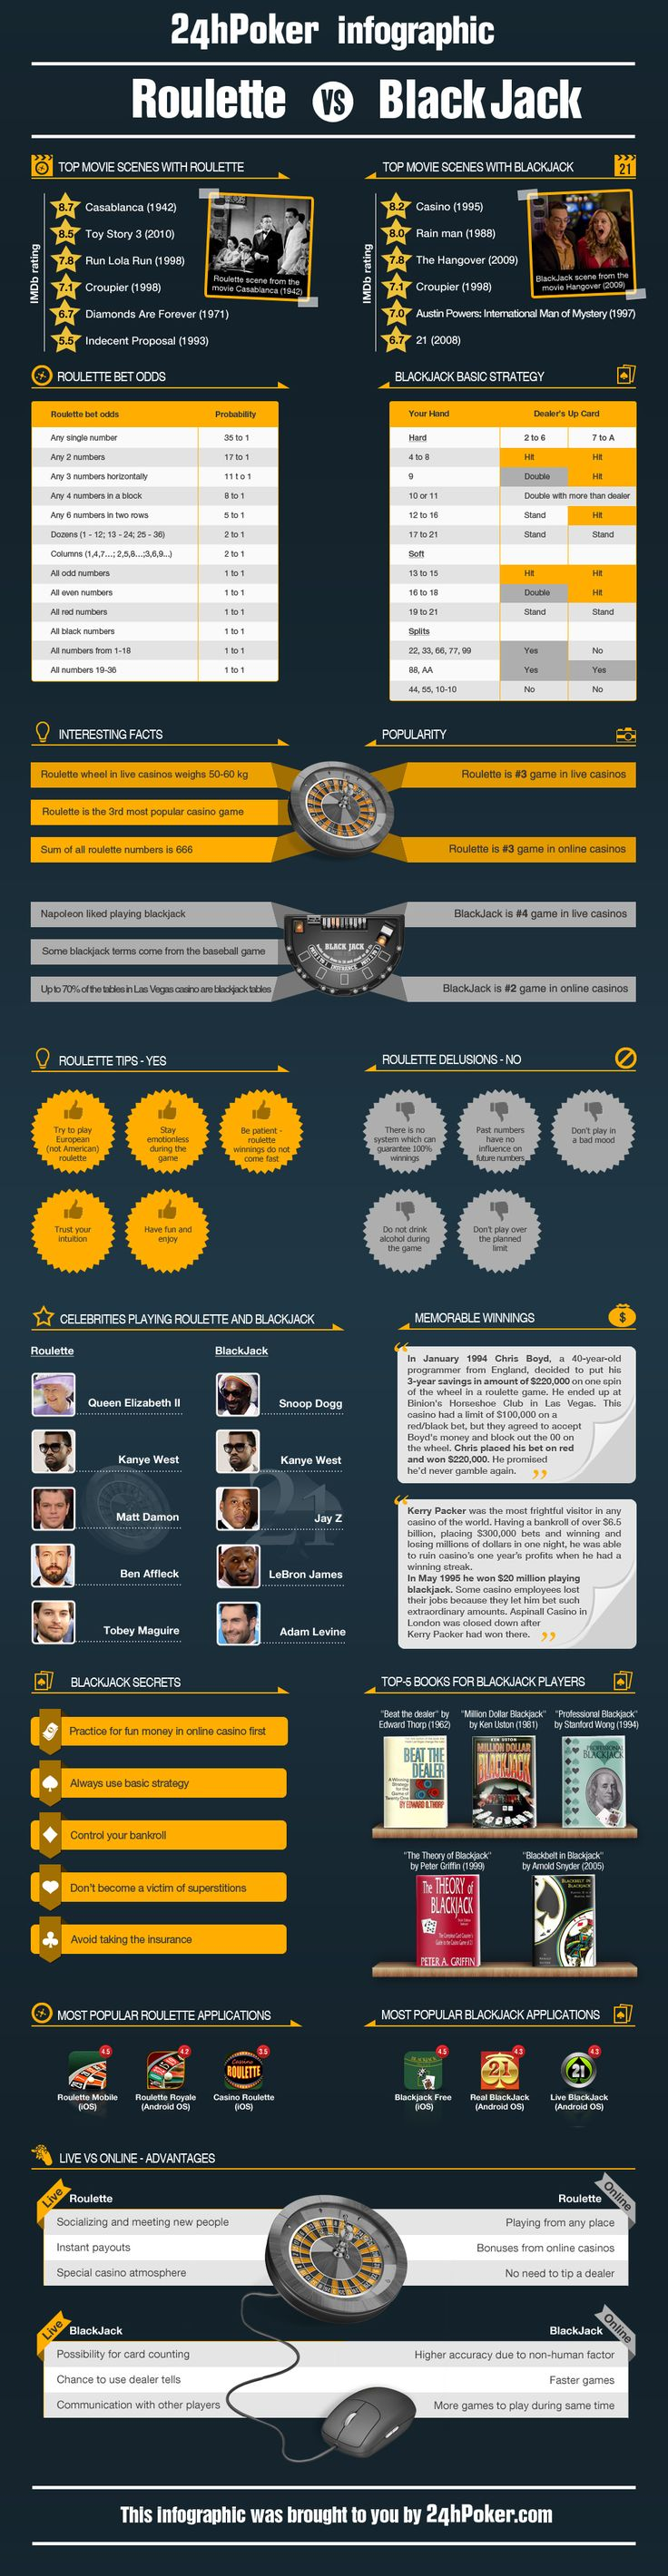 This infographic was developed by 24hpoker on the two most popular casino games – Blackjack and Roulette.